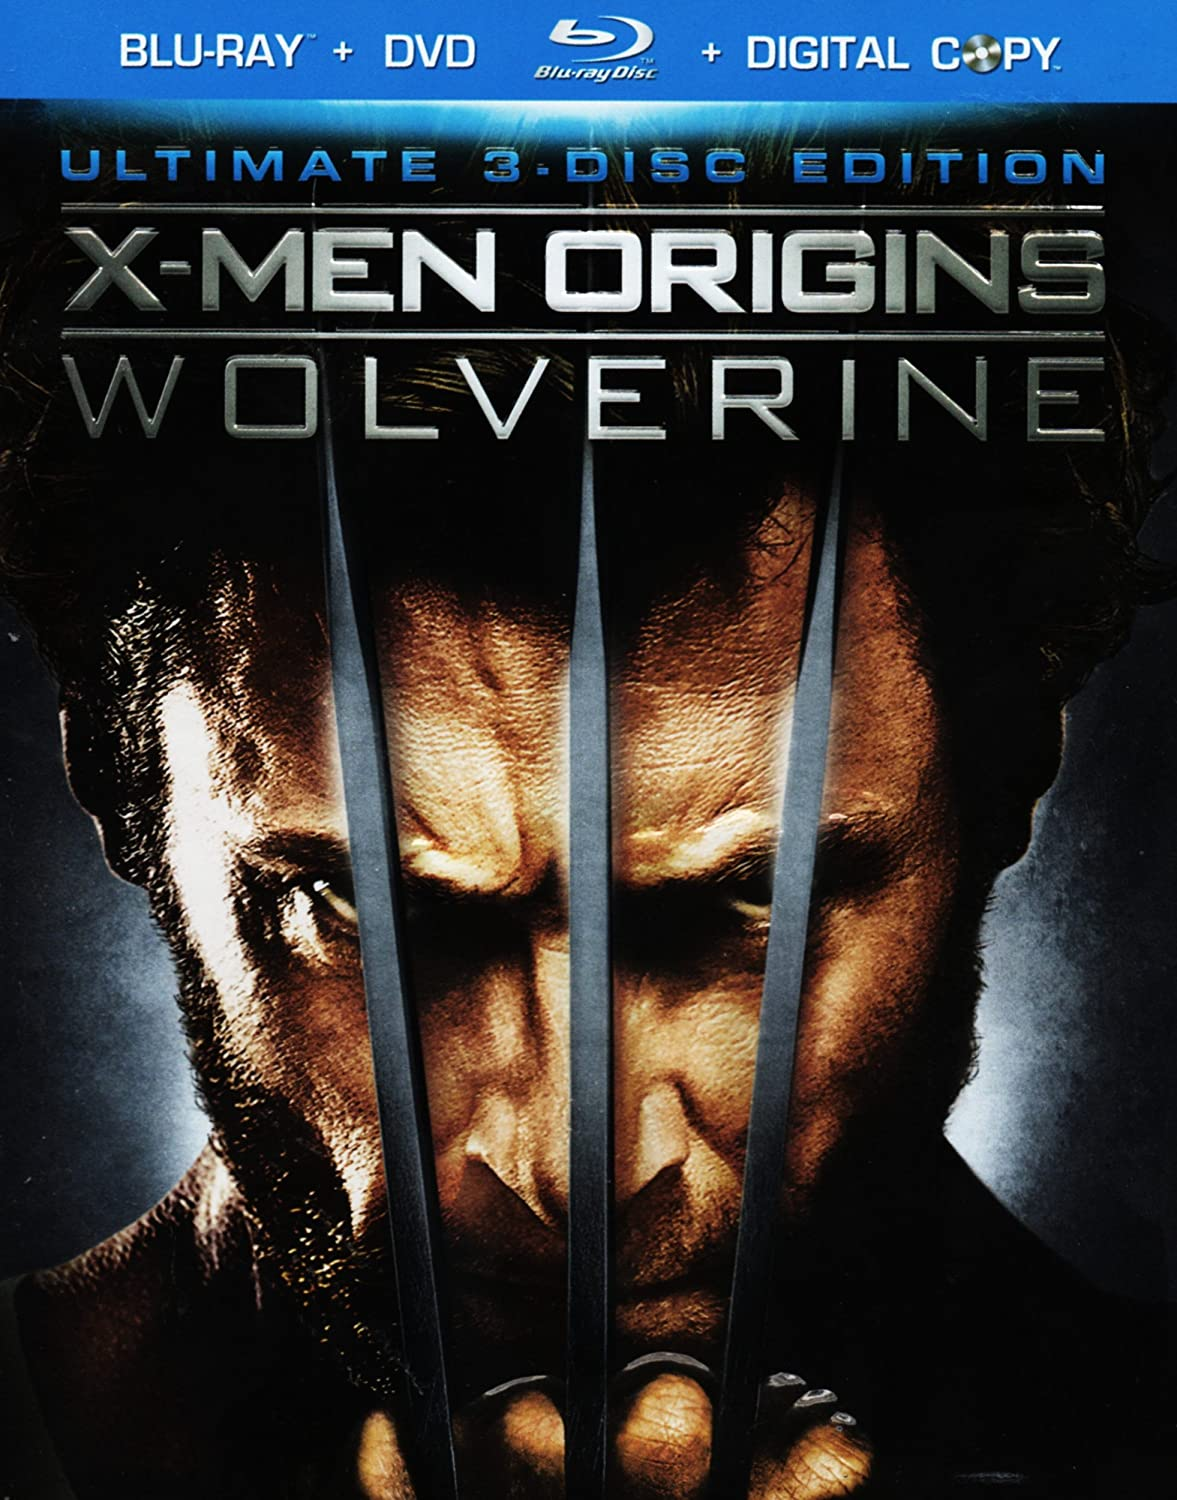 Amazon.com: X-Men Origins: Wolverine - Ultimate 3-Disc Edition (Blu ...